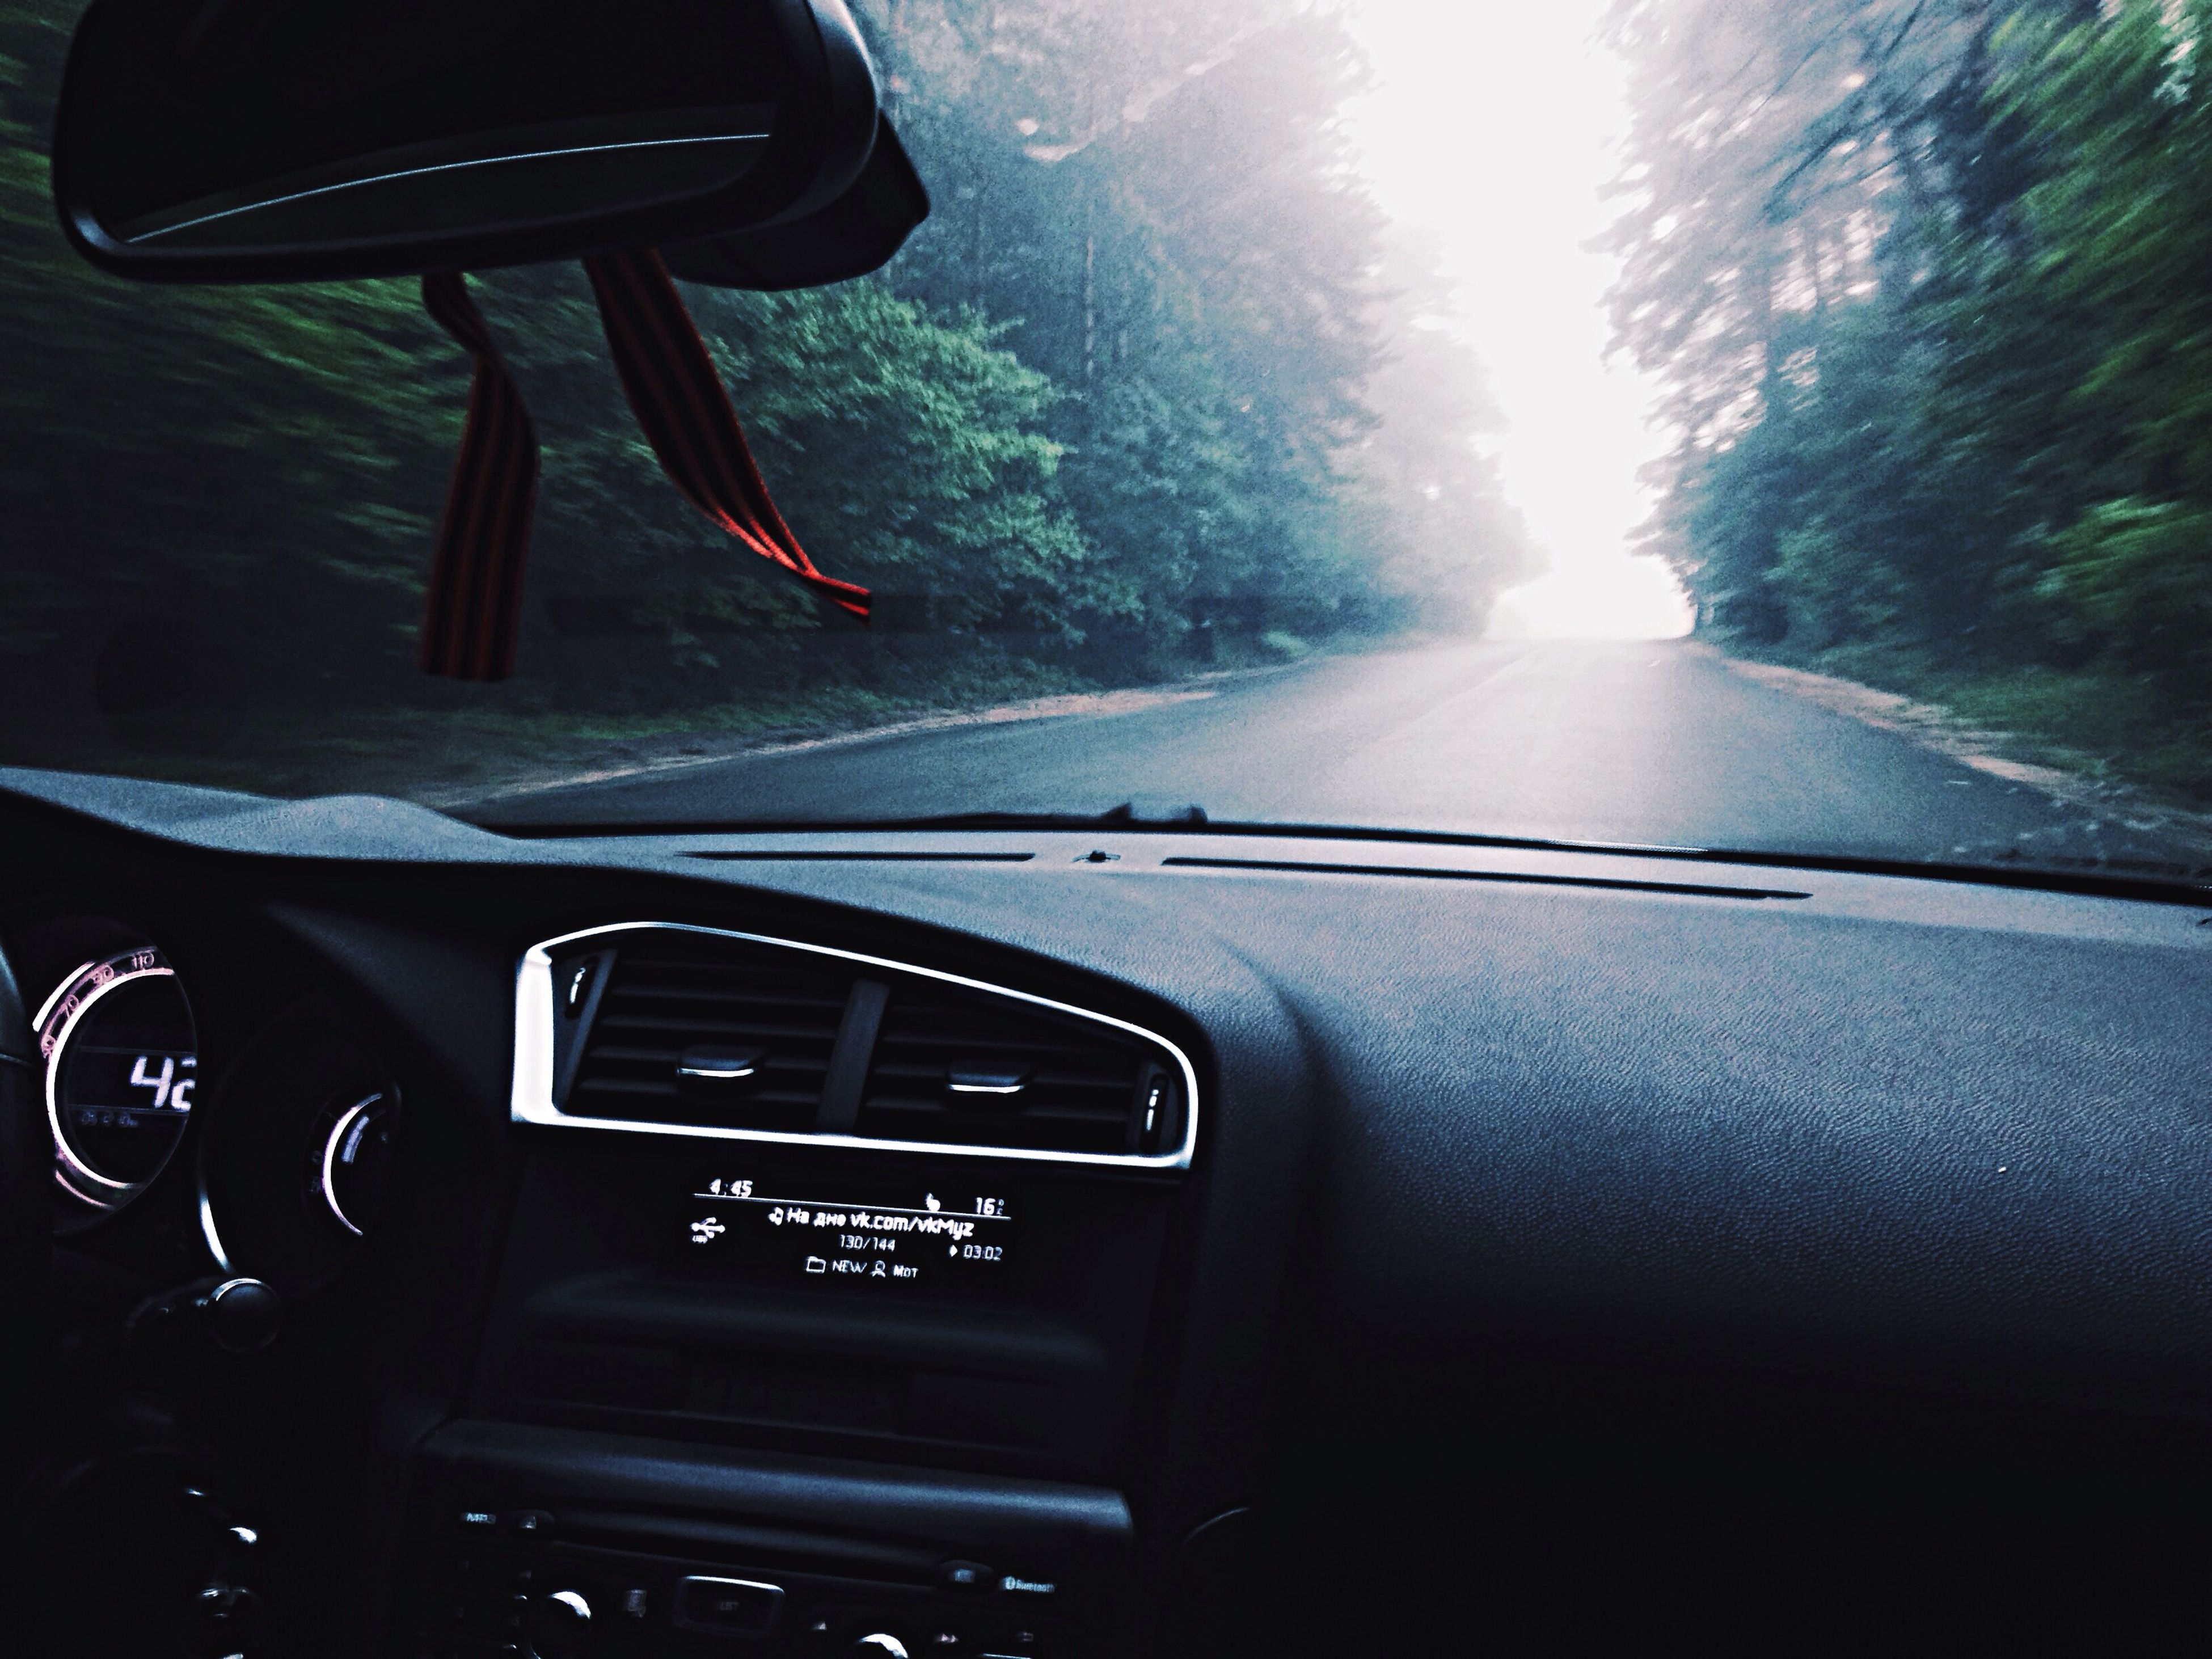 car, transportation, car interior, vehicle interior, land vehicle, road, no people, day, close-up, nature, outdoors